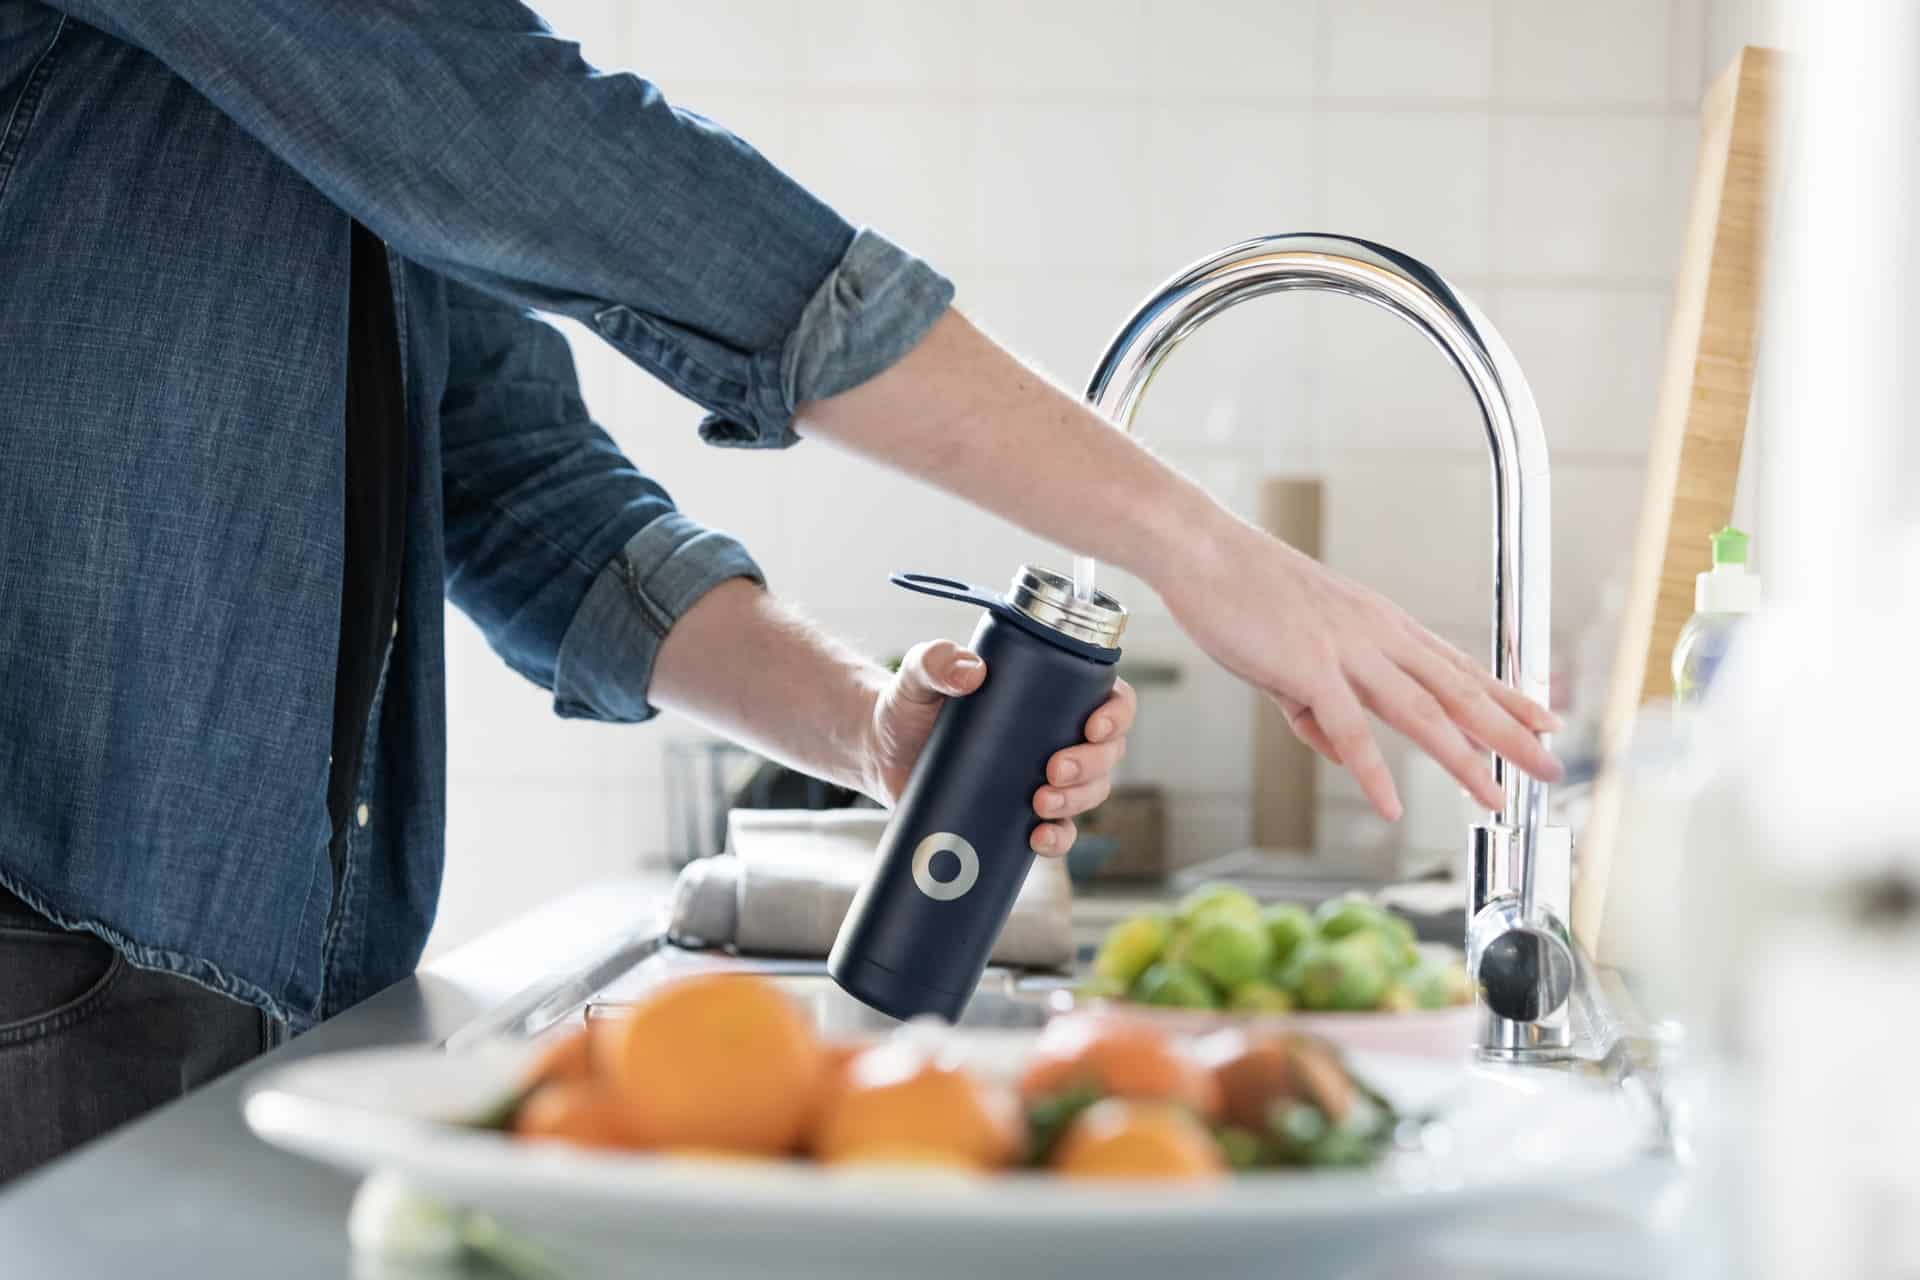 A person filling up a water bottle using a kitchen faucet